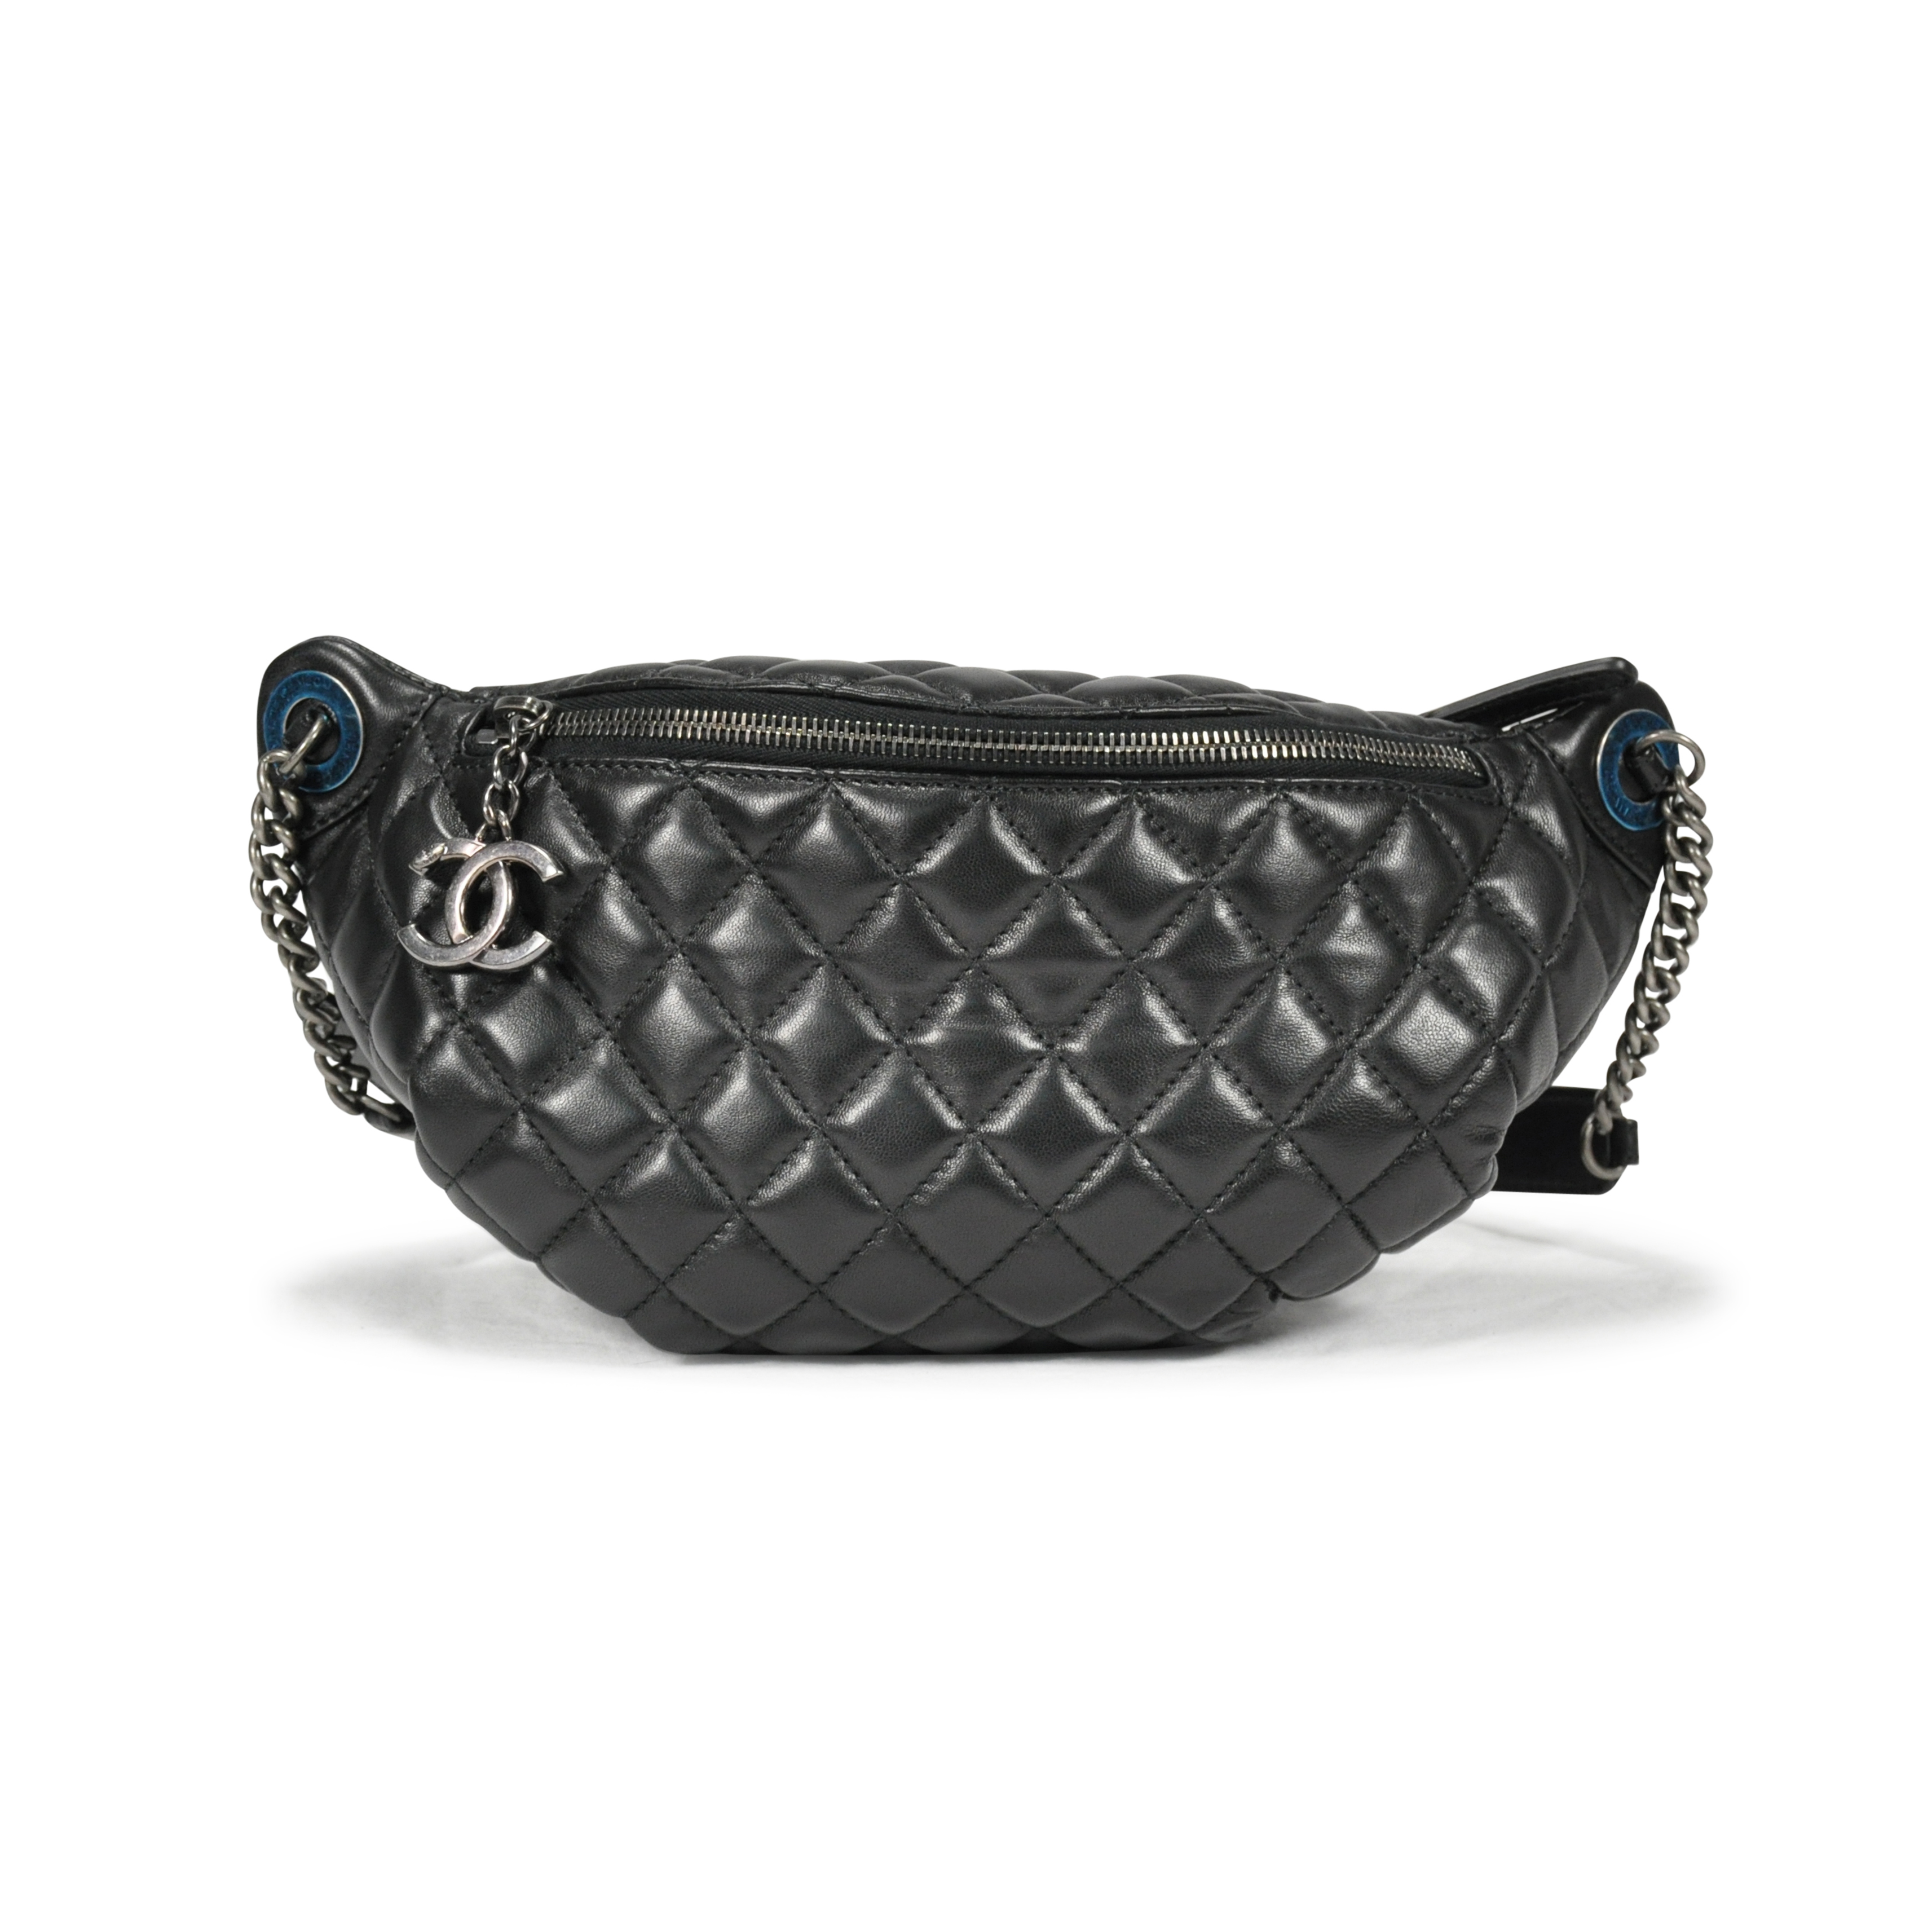 8b4f347924d17b Authentic Second Hand Chanel Quilted Fanny Pack Waist Bag (PSS-145-00087) |  THE FIFTH COLLECTION